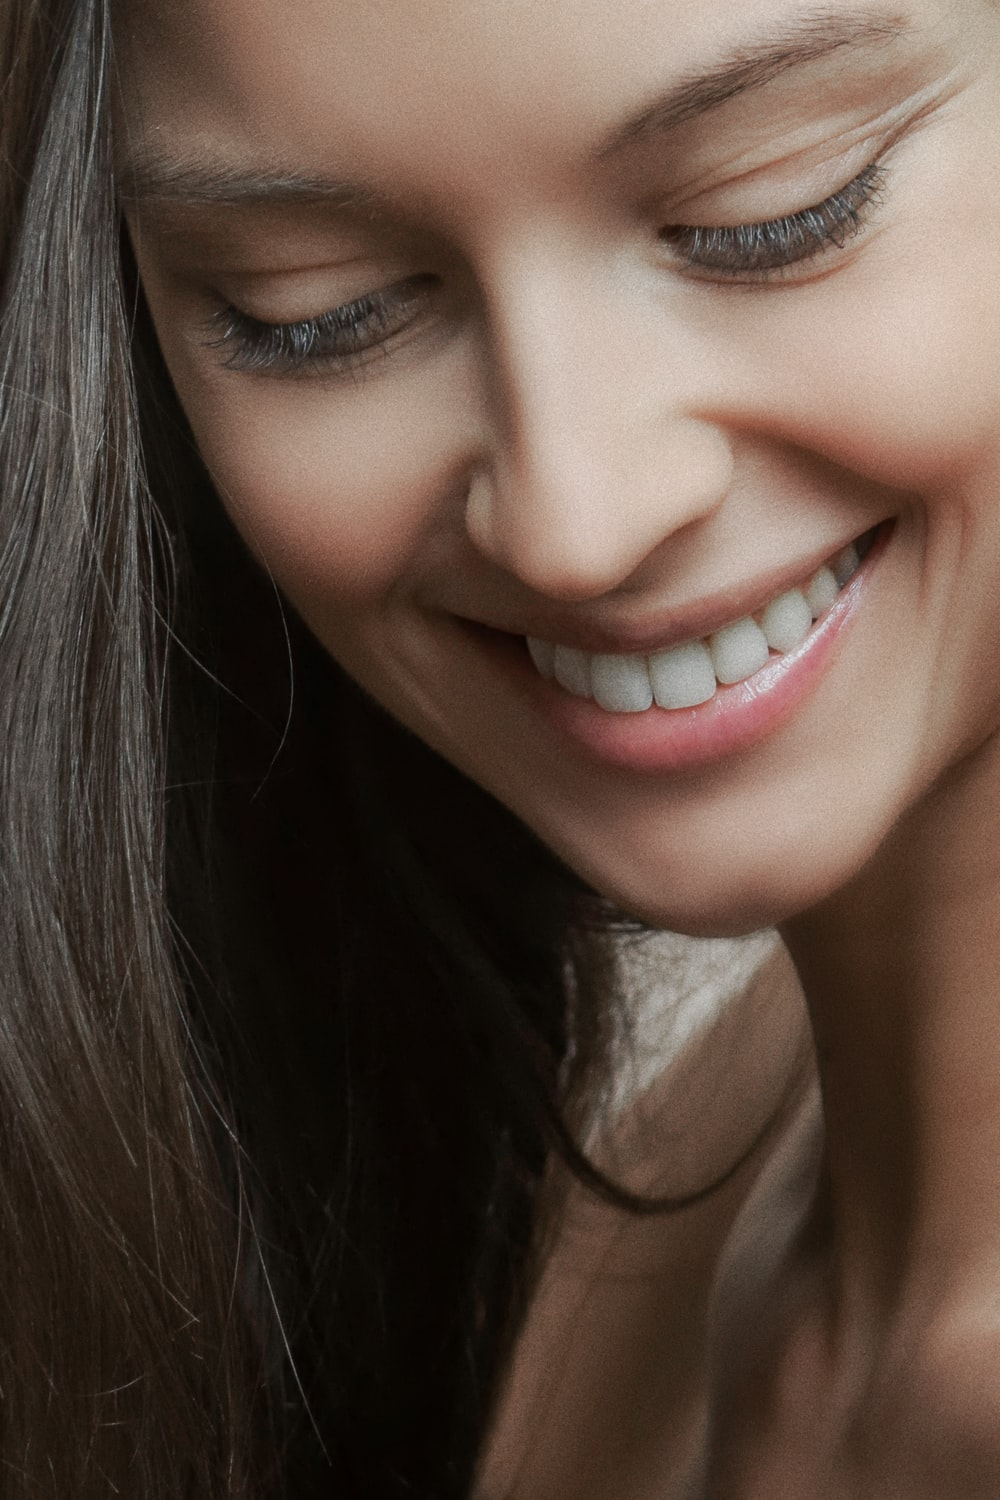 woman smiling face